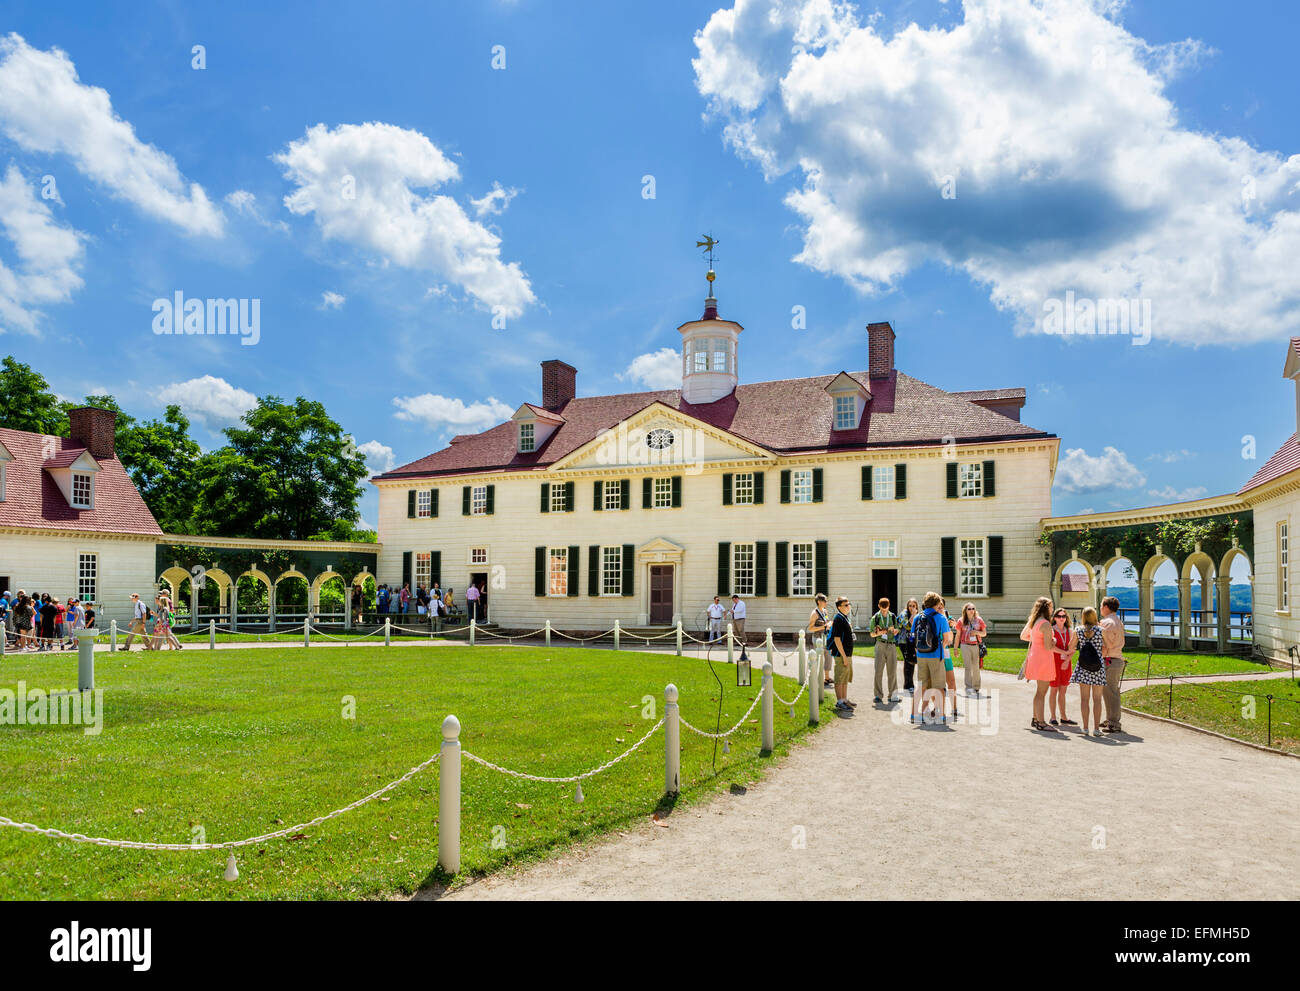 Visitors outside the front of President George Washington's plantation mansion at Mount Vernon, Fairfax County, - Stock Image